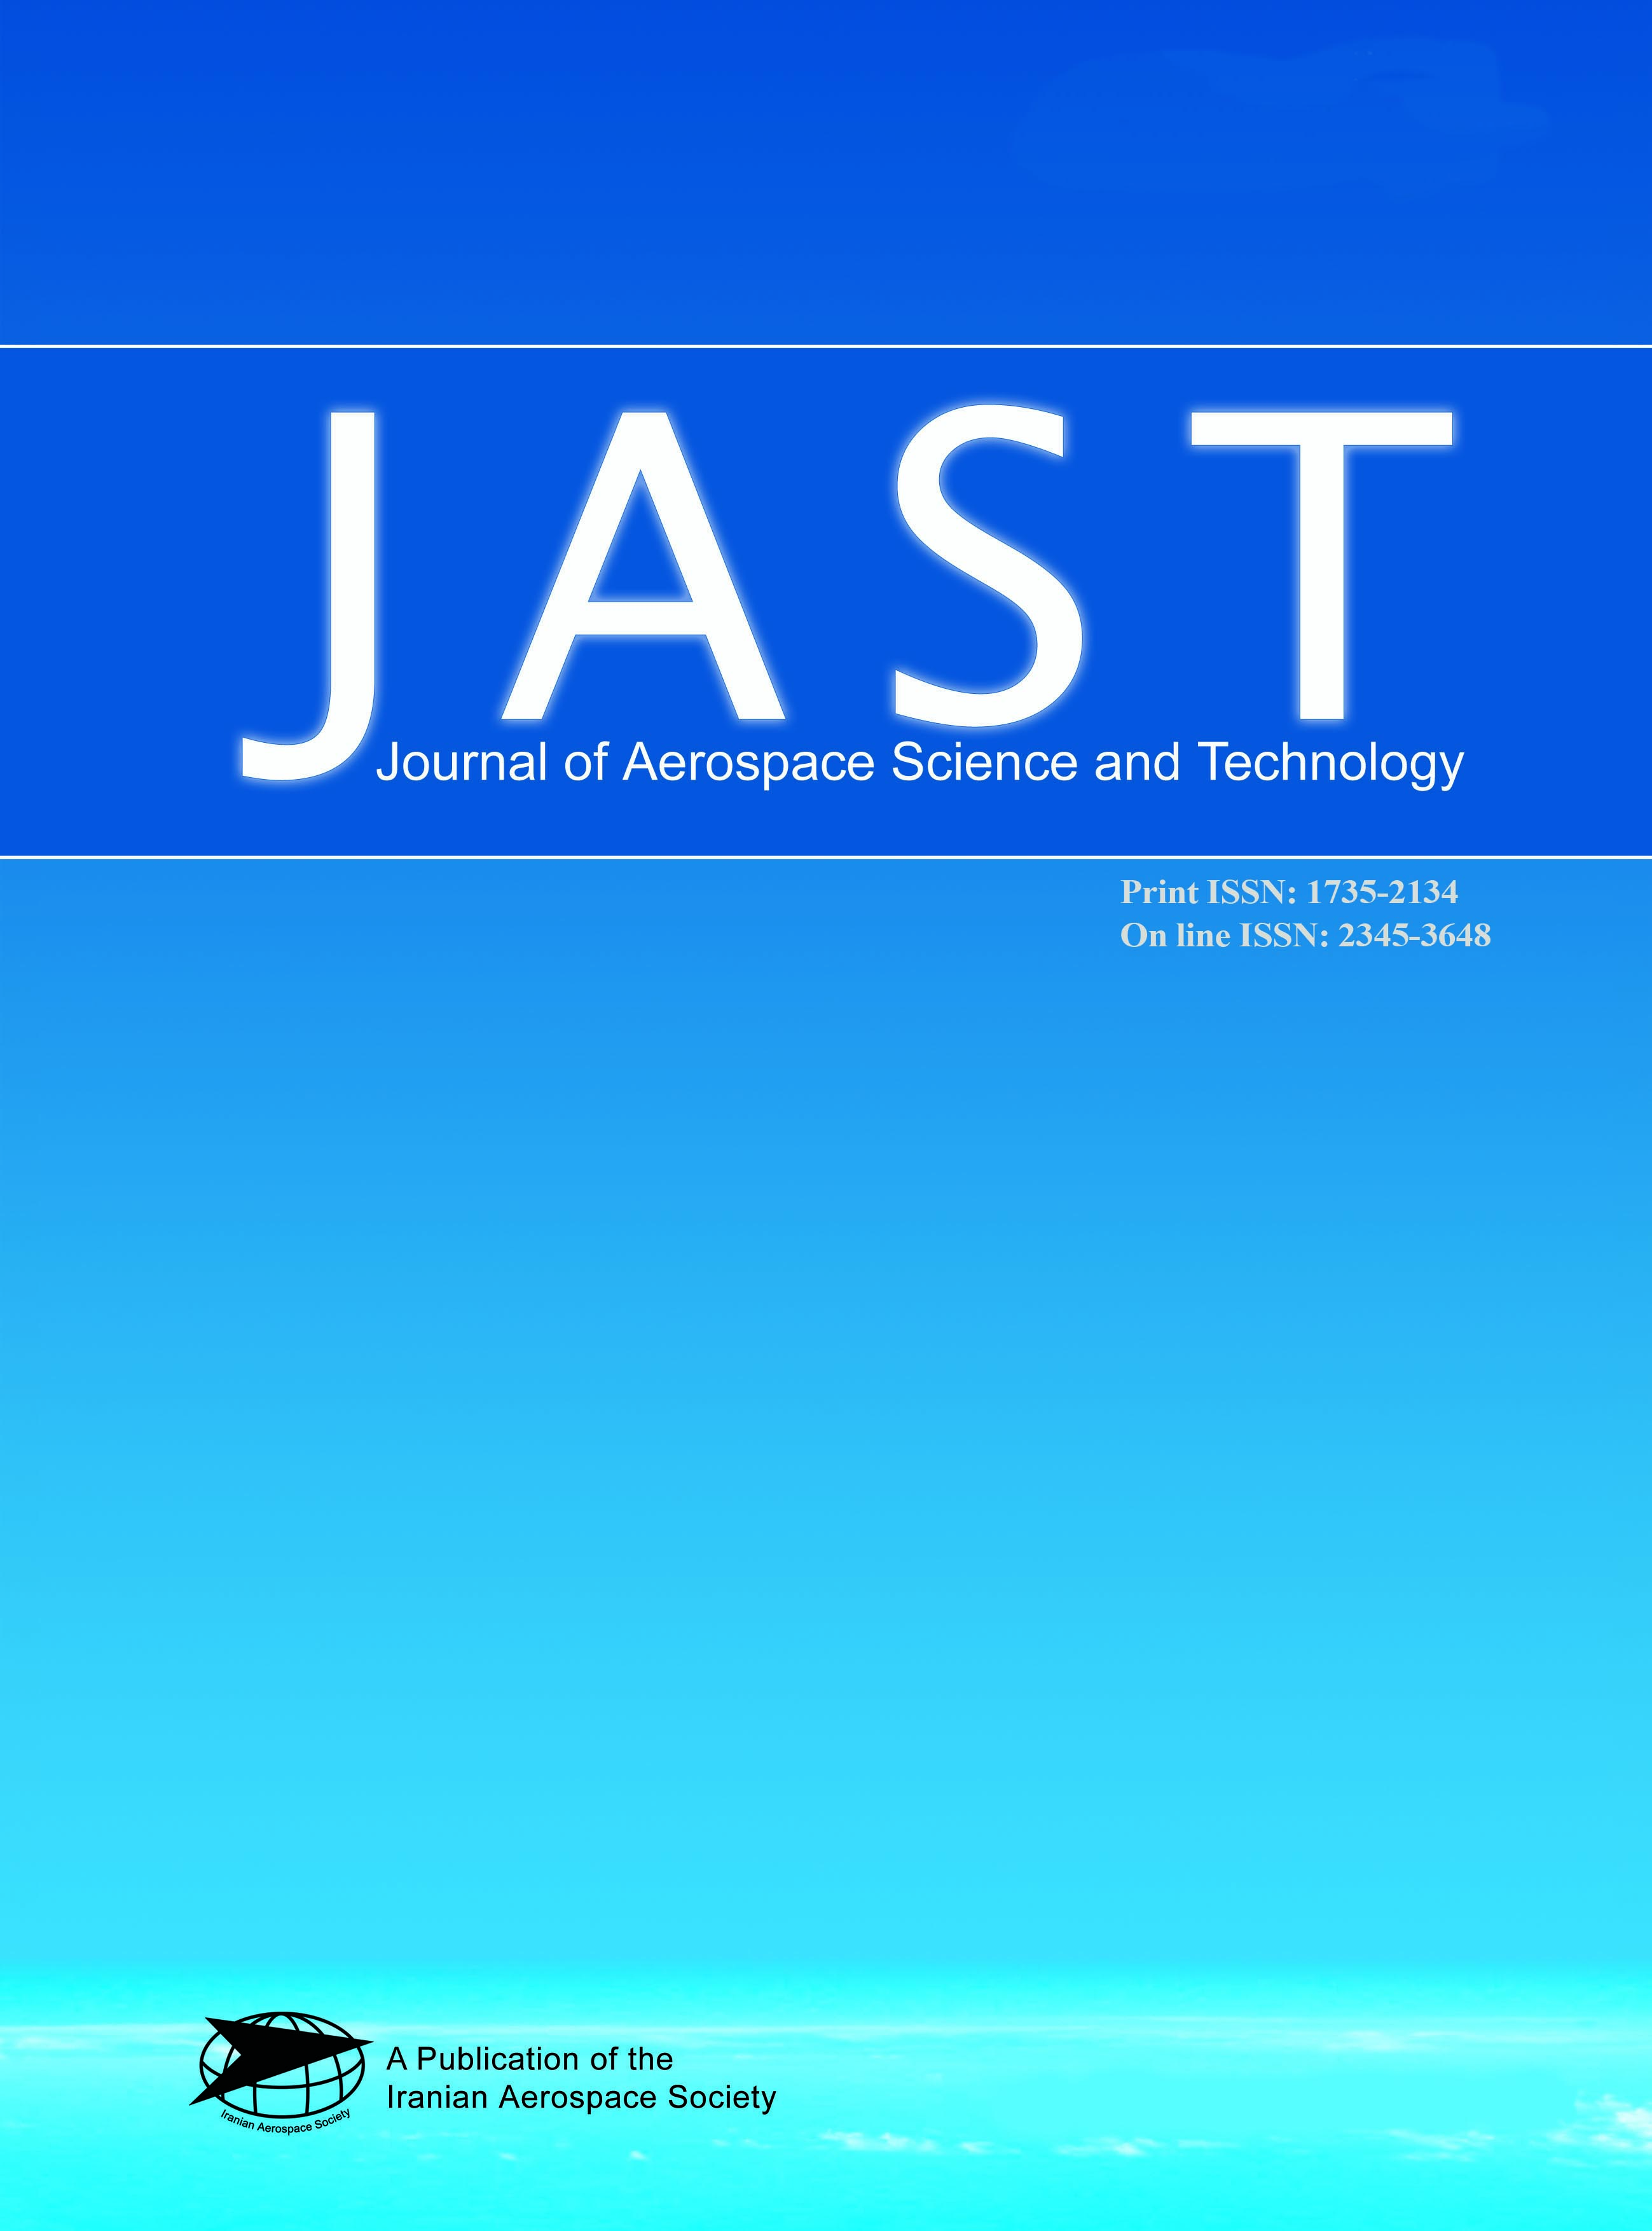 Journal of Aerospace Science and Technology